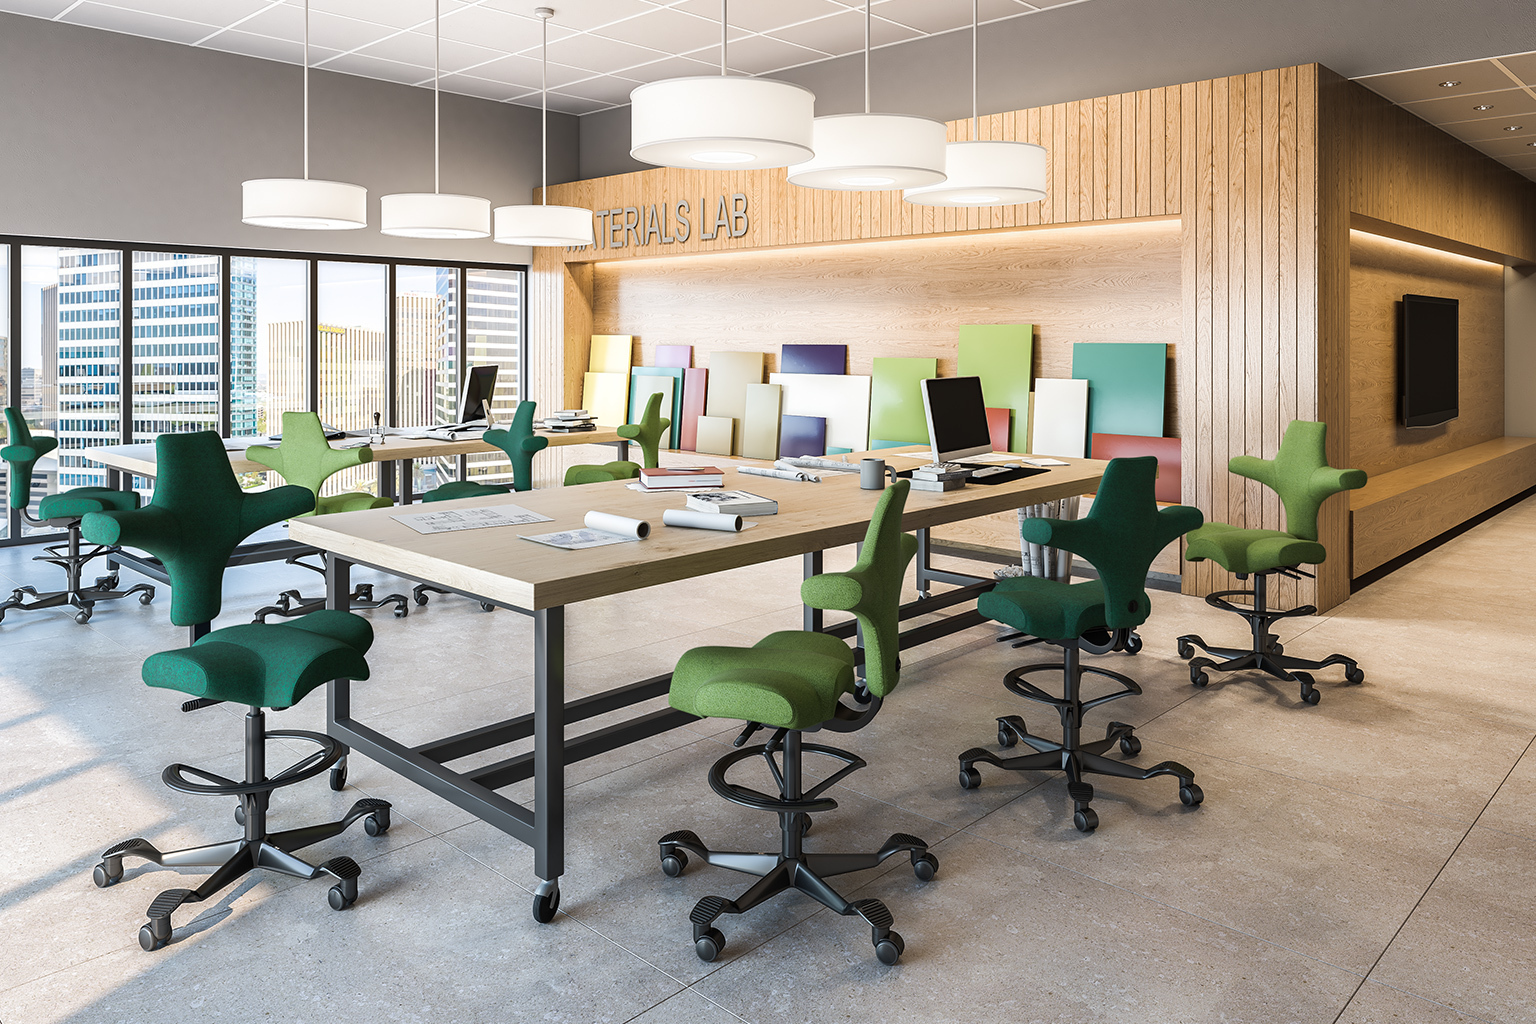 The HÅG Capisco chair has altered the way people find comfort while performing work. See here in an open office environment.